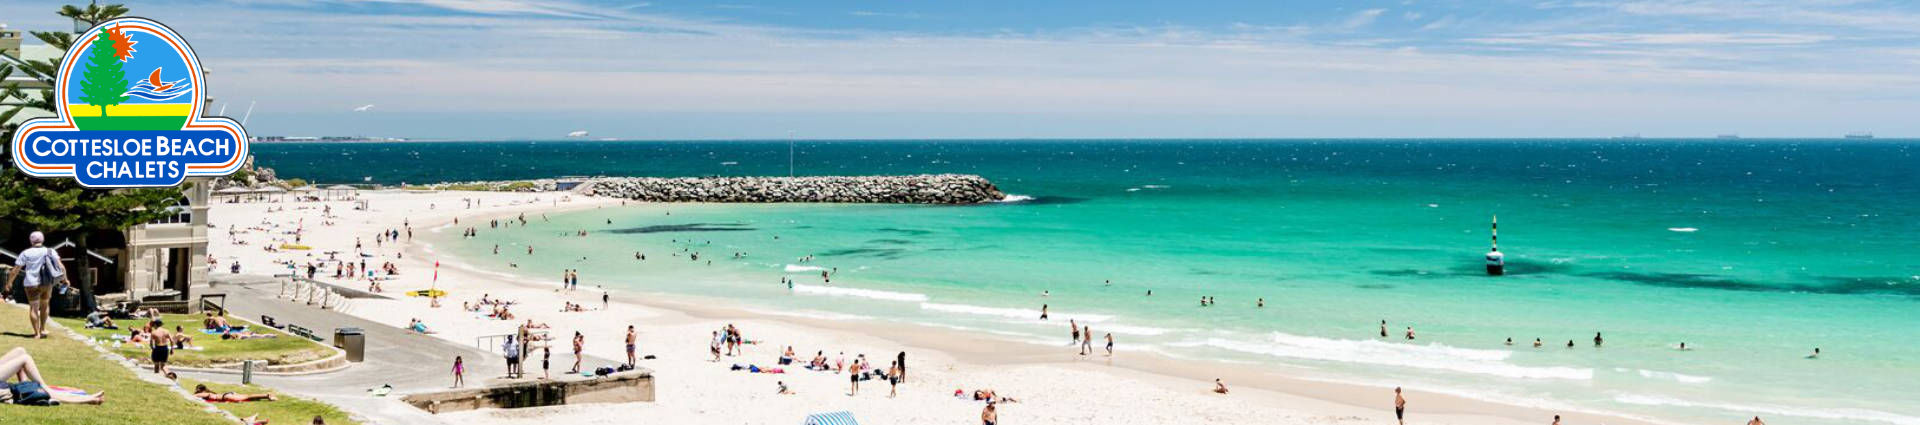 Cottesloe Beach Chalets Perth Our Hotel Accommodation